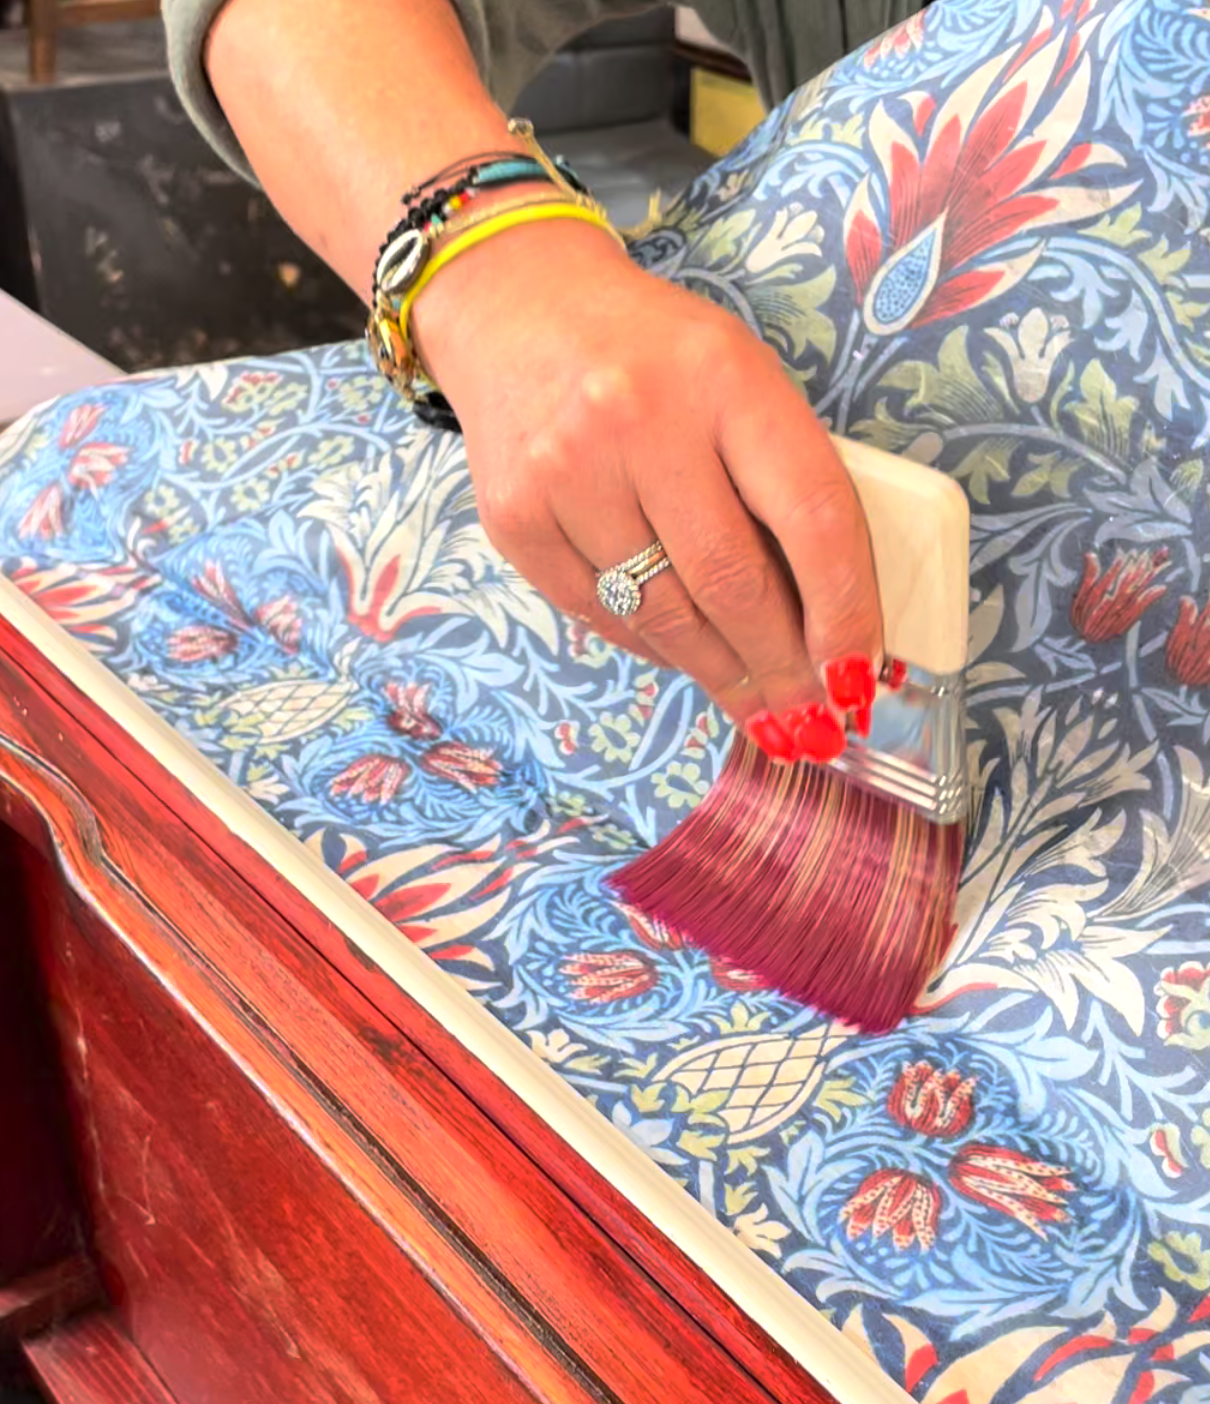 Decoupage paper being laid onto a furniture makeover project using a dry paintbrush. The decoupage is mainly blue and features a lively pattern.